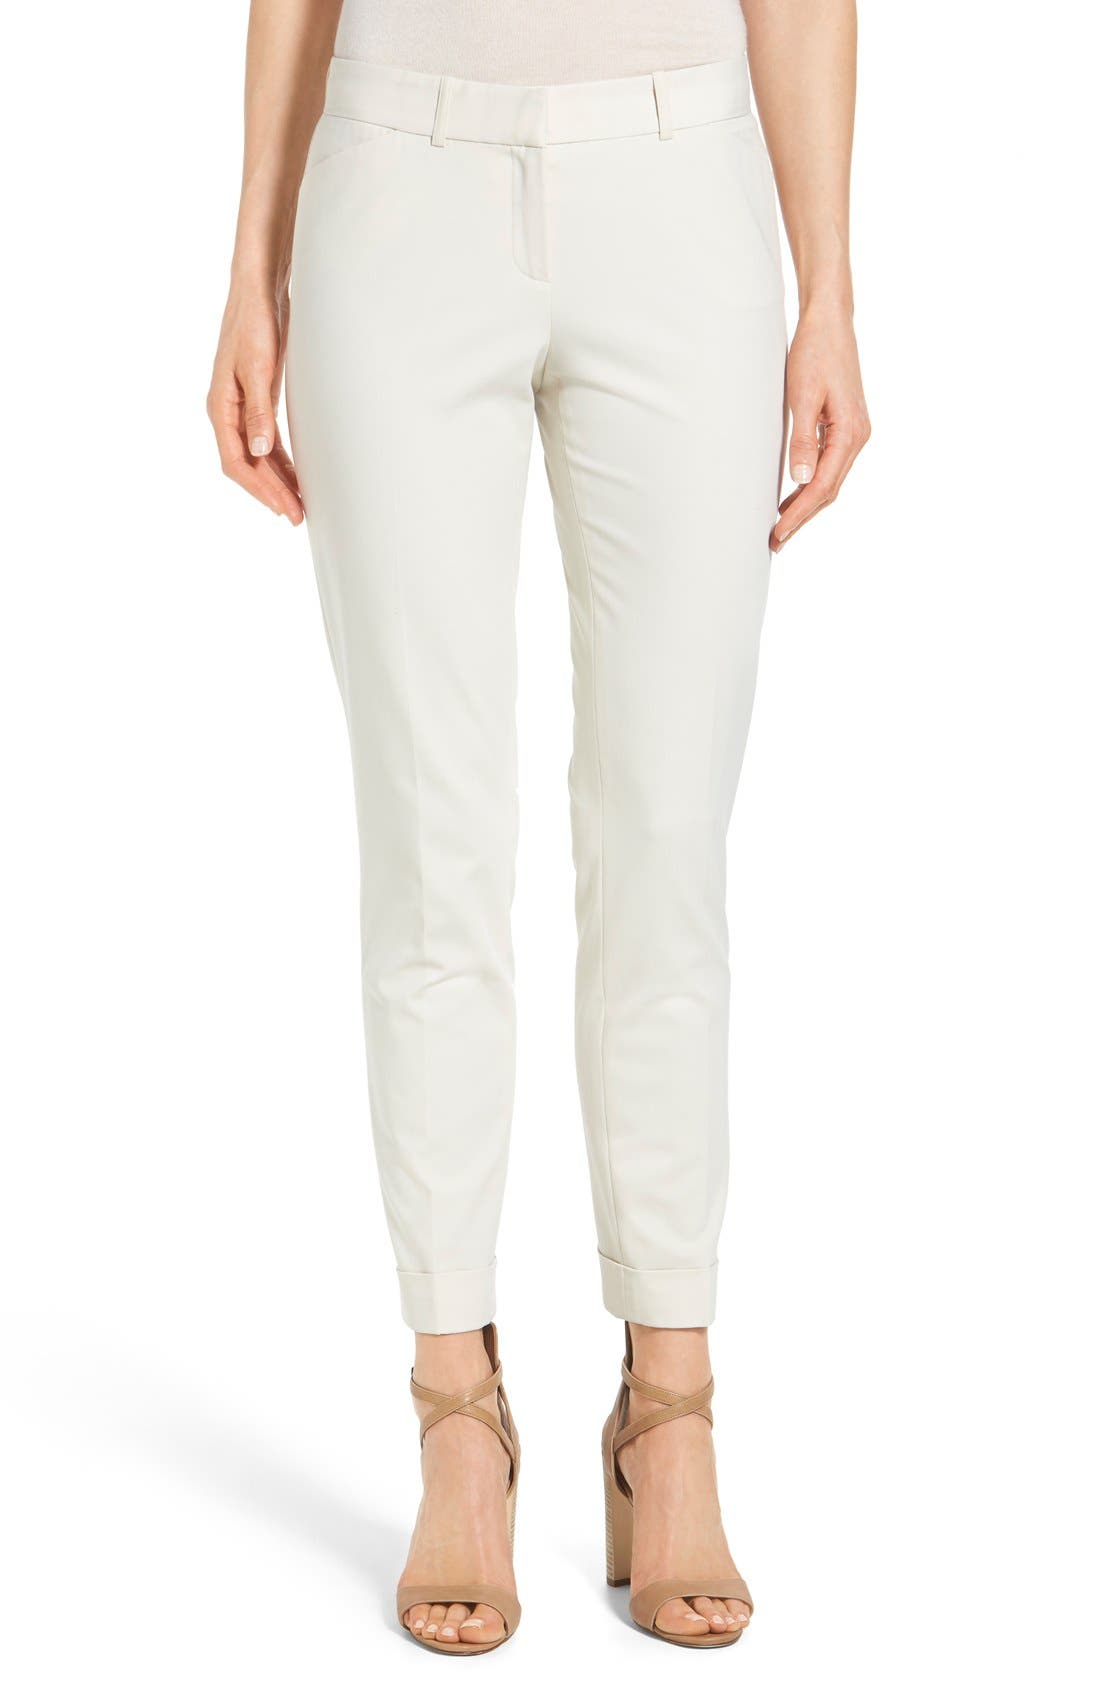 LAFAYETTE 148 NEW YORK 'Downtown' Stretch Cotton Blend